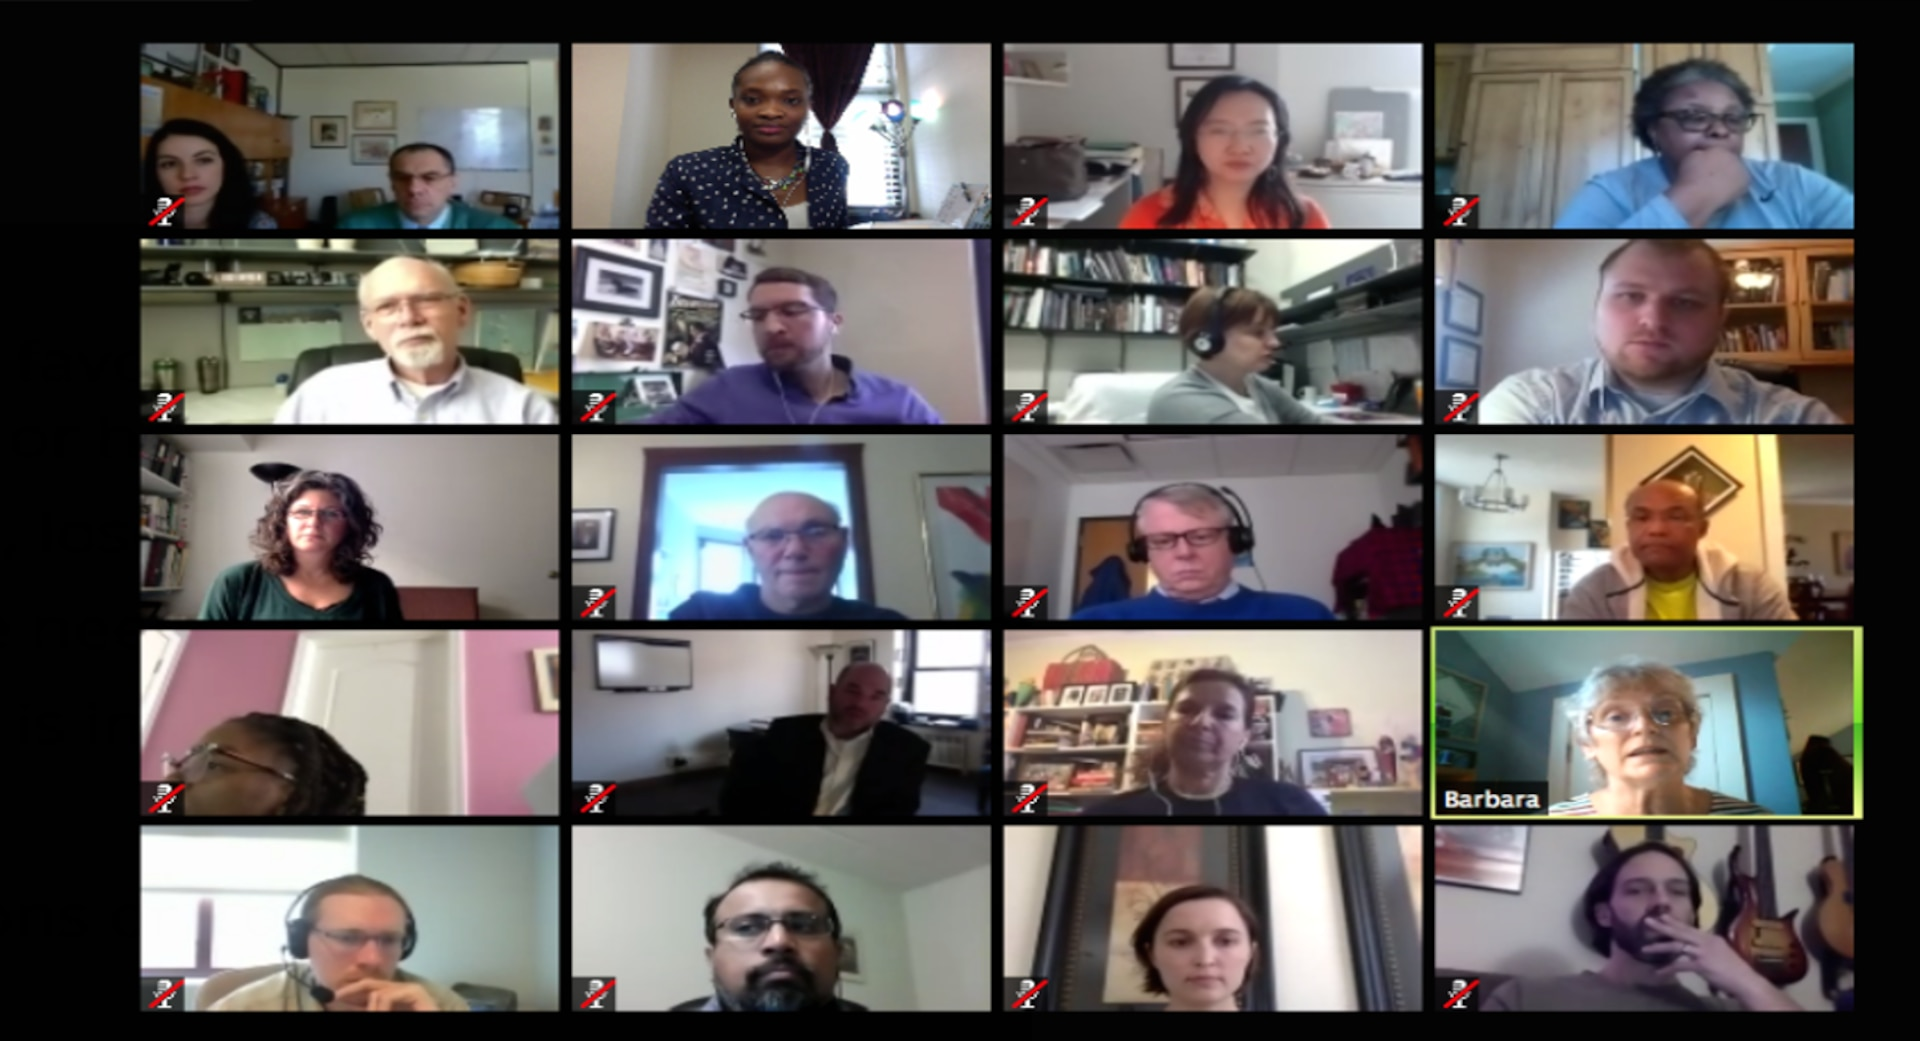 screenshot of 16 students listening to the instructor during a virtual class